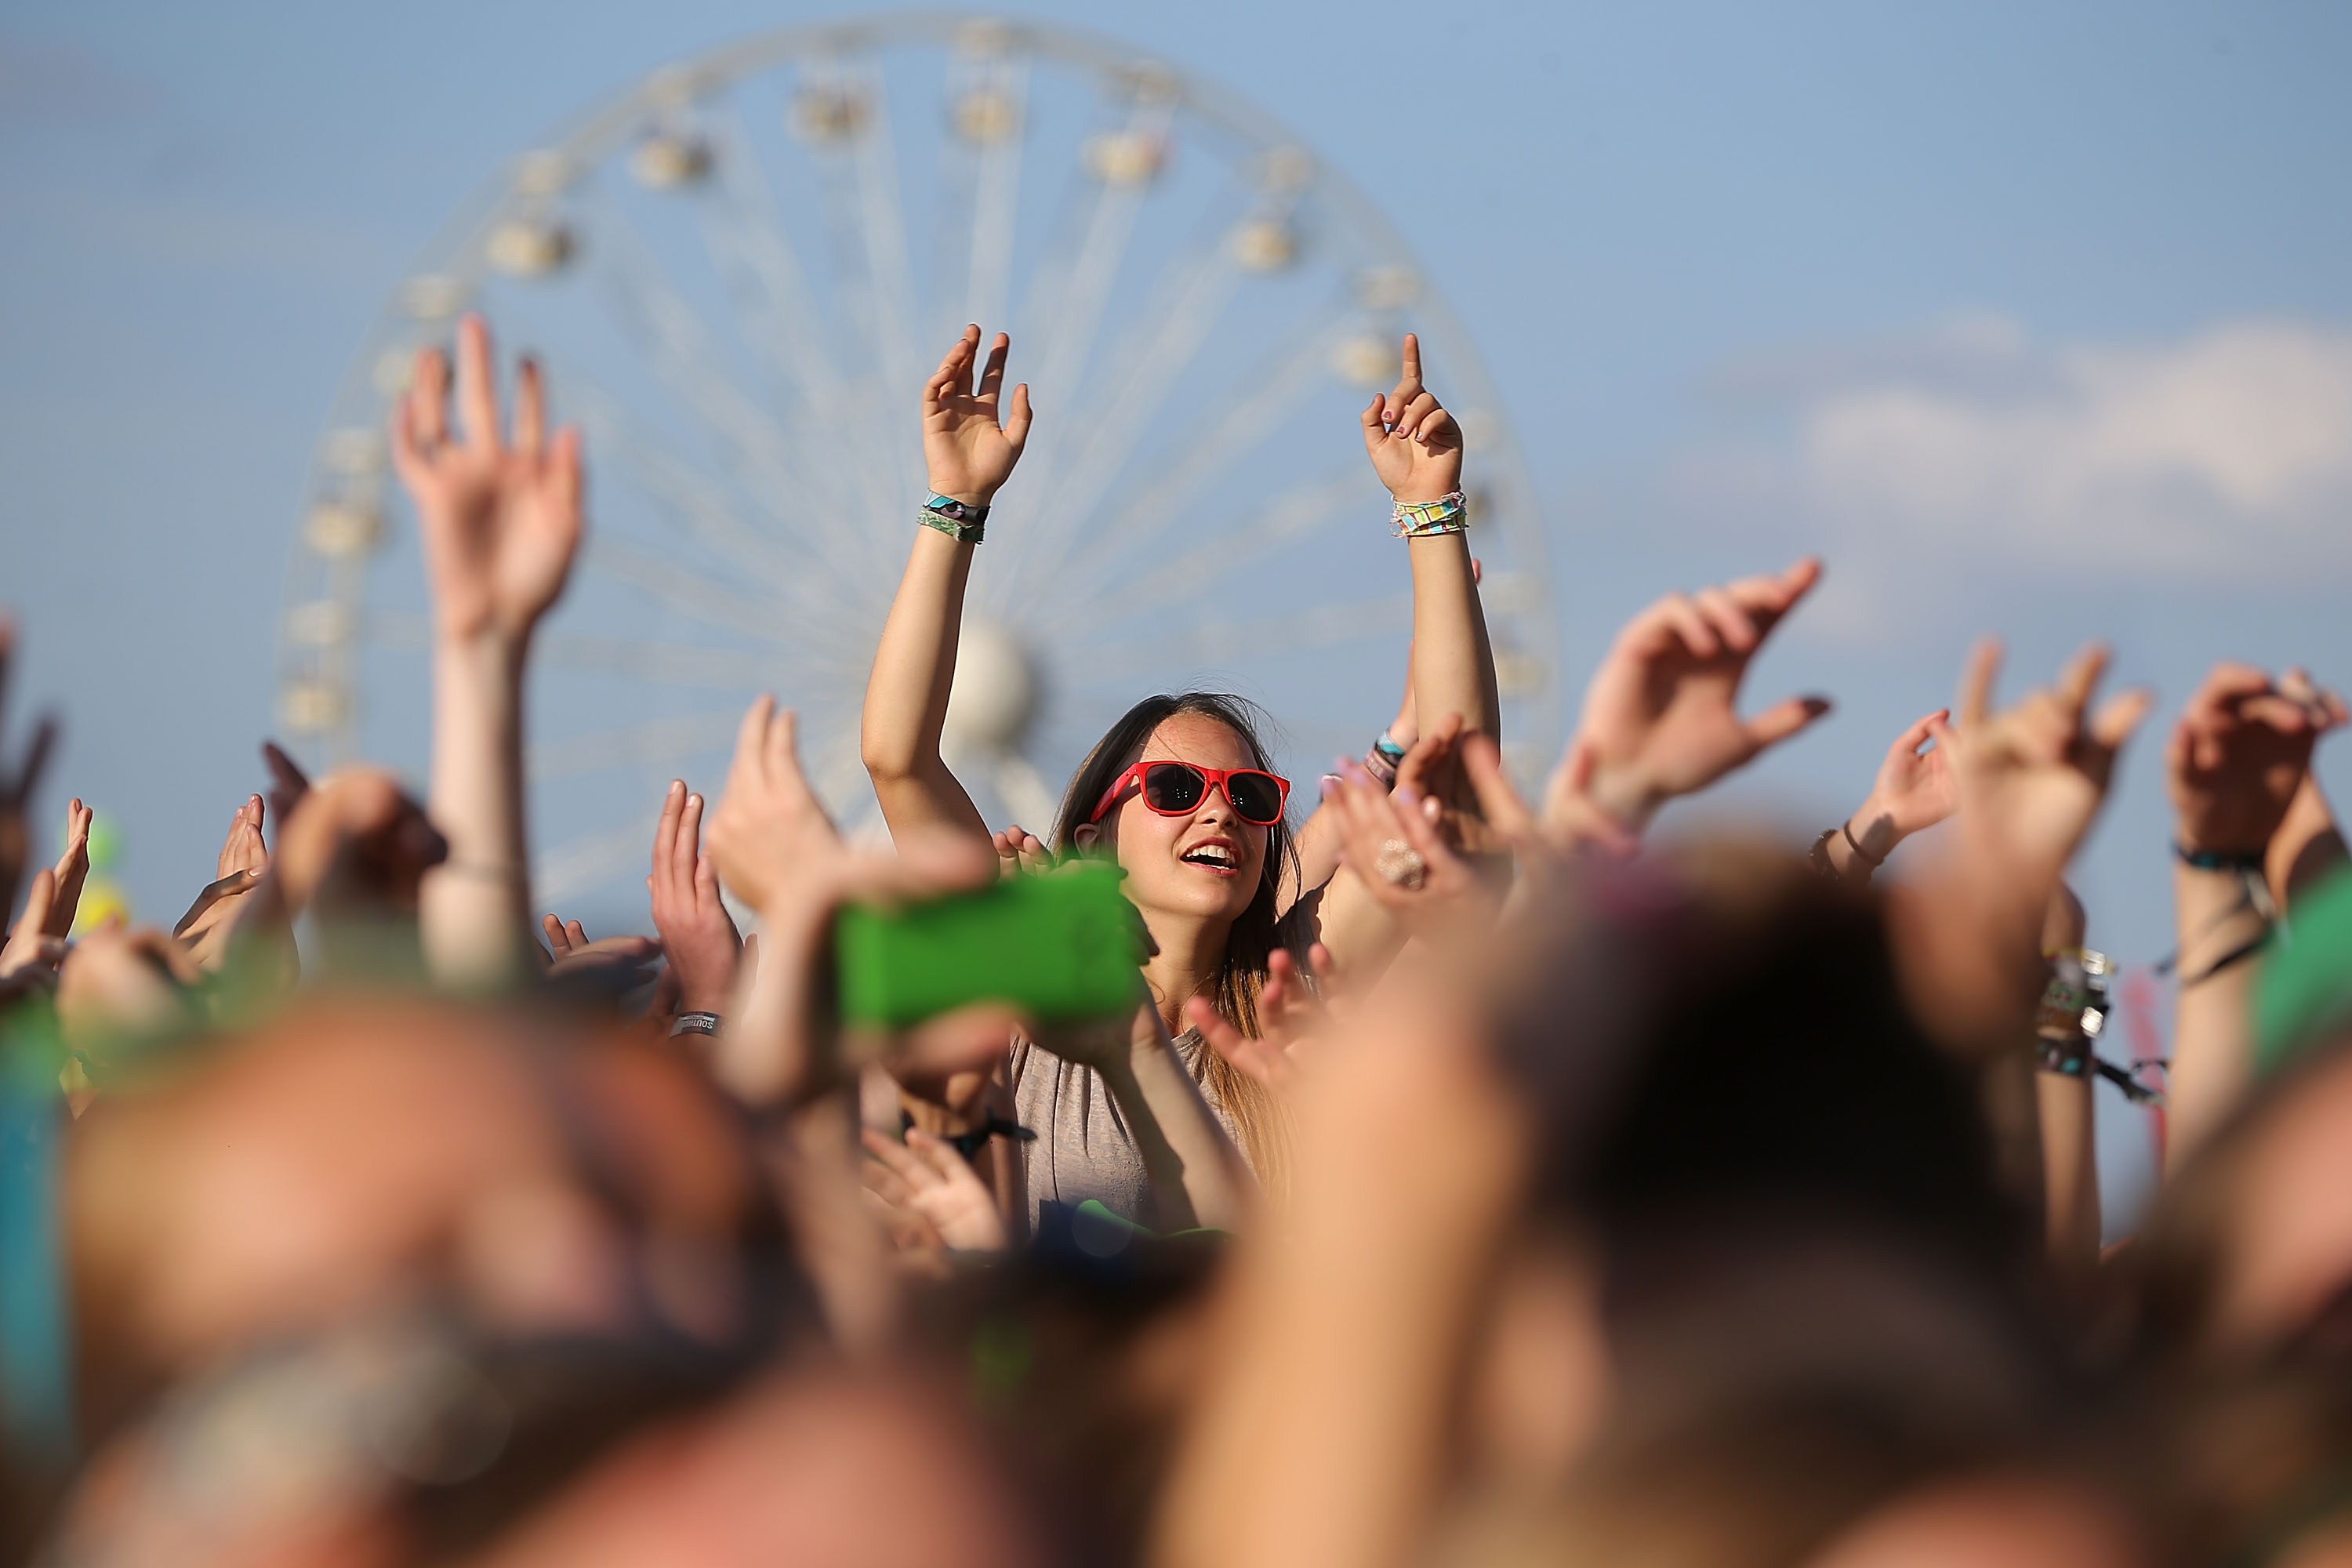 NEUHAUSEN, GERMANY - JUNE 20:  General view of day 1 at the Southside Festival 2014 on June 20, 2014 in Neuhausen, Germany.